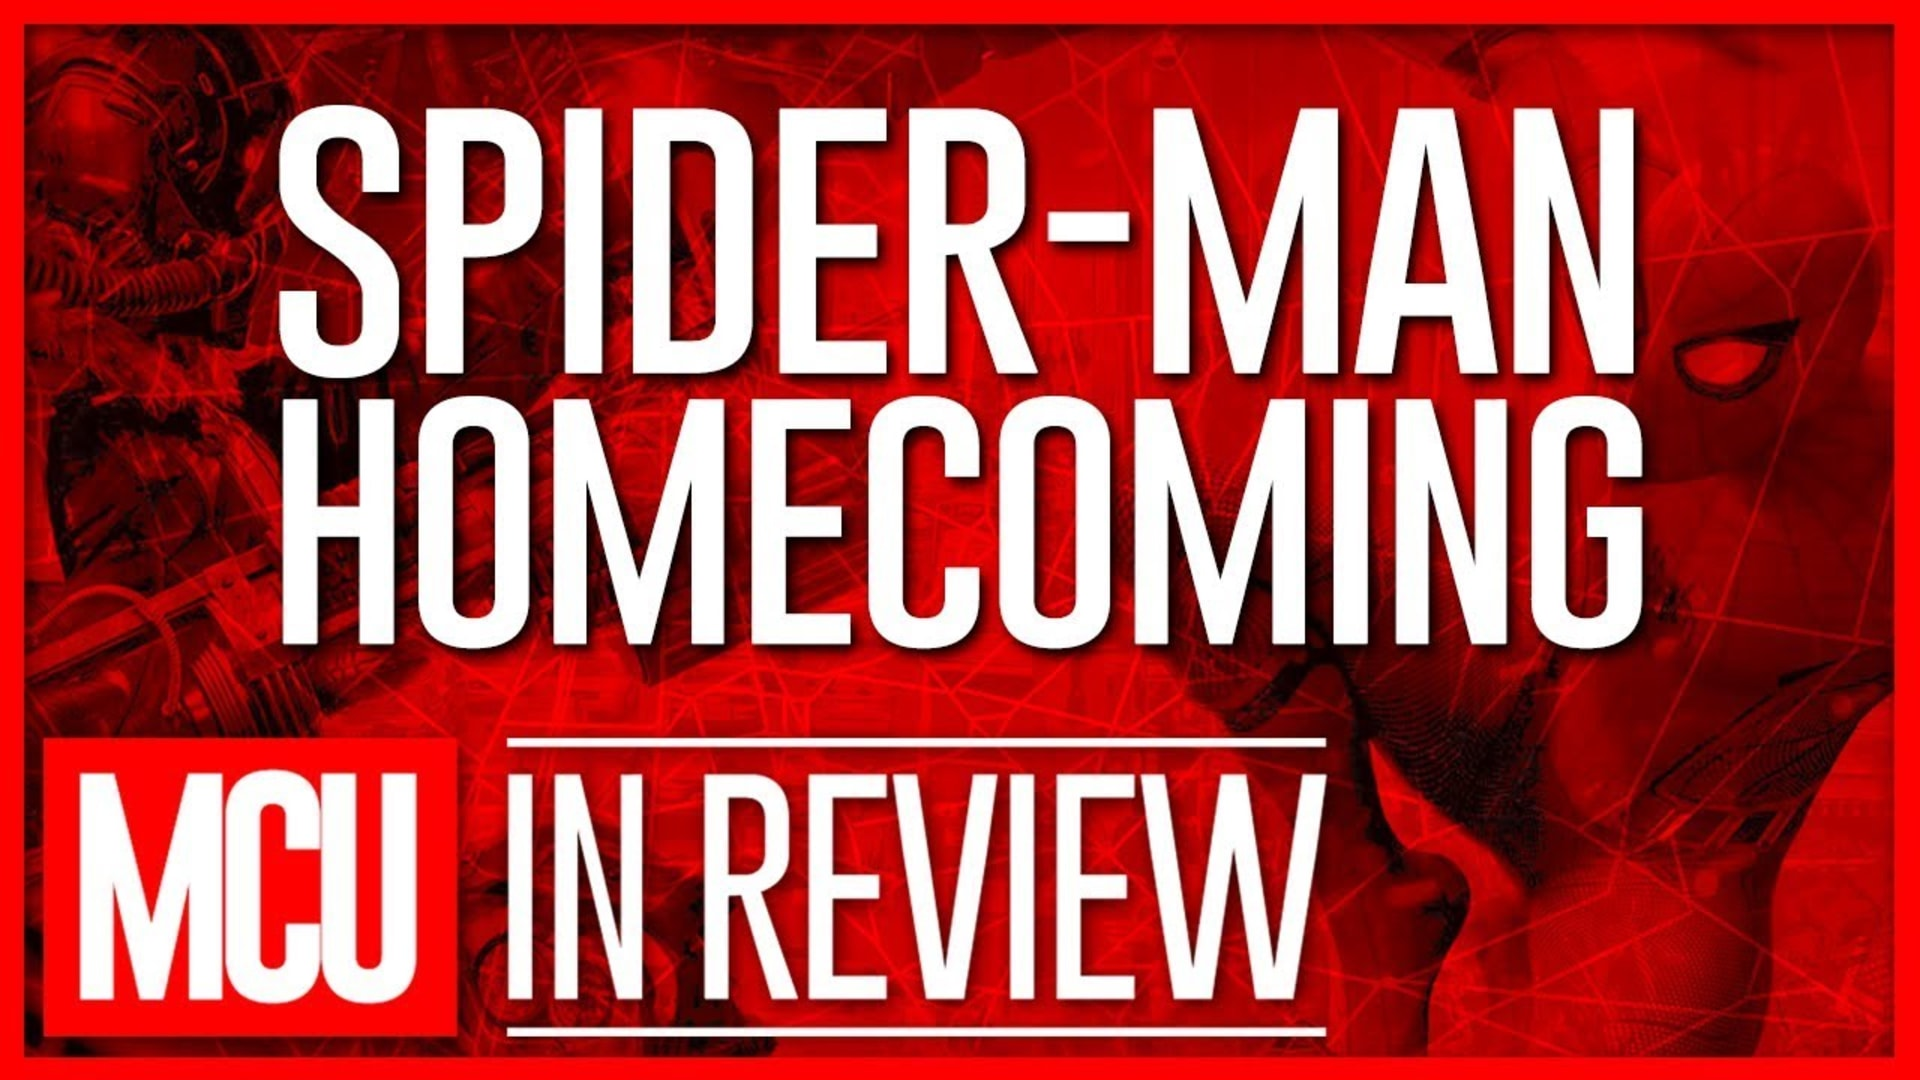 Spider-Man: Homecoming - Every Marvel Movie Reviewed